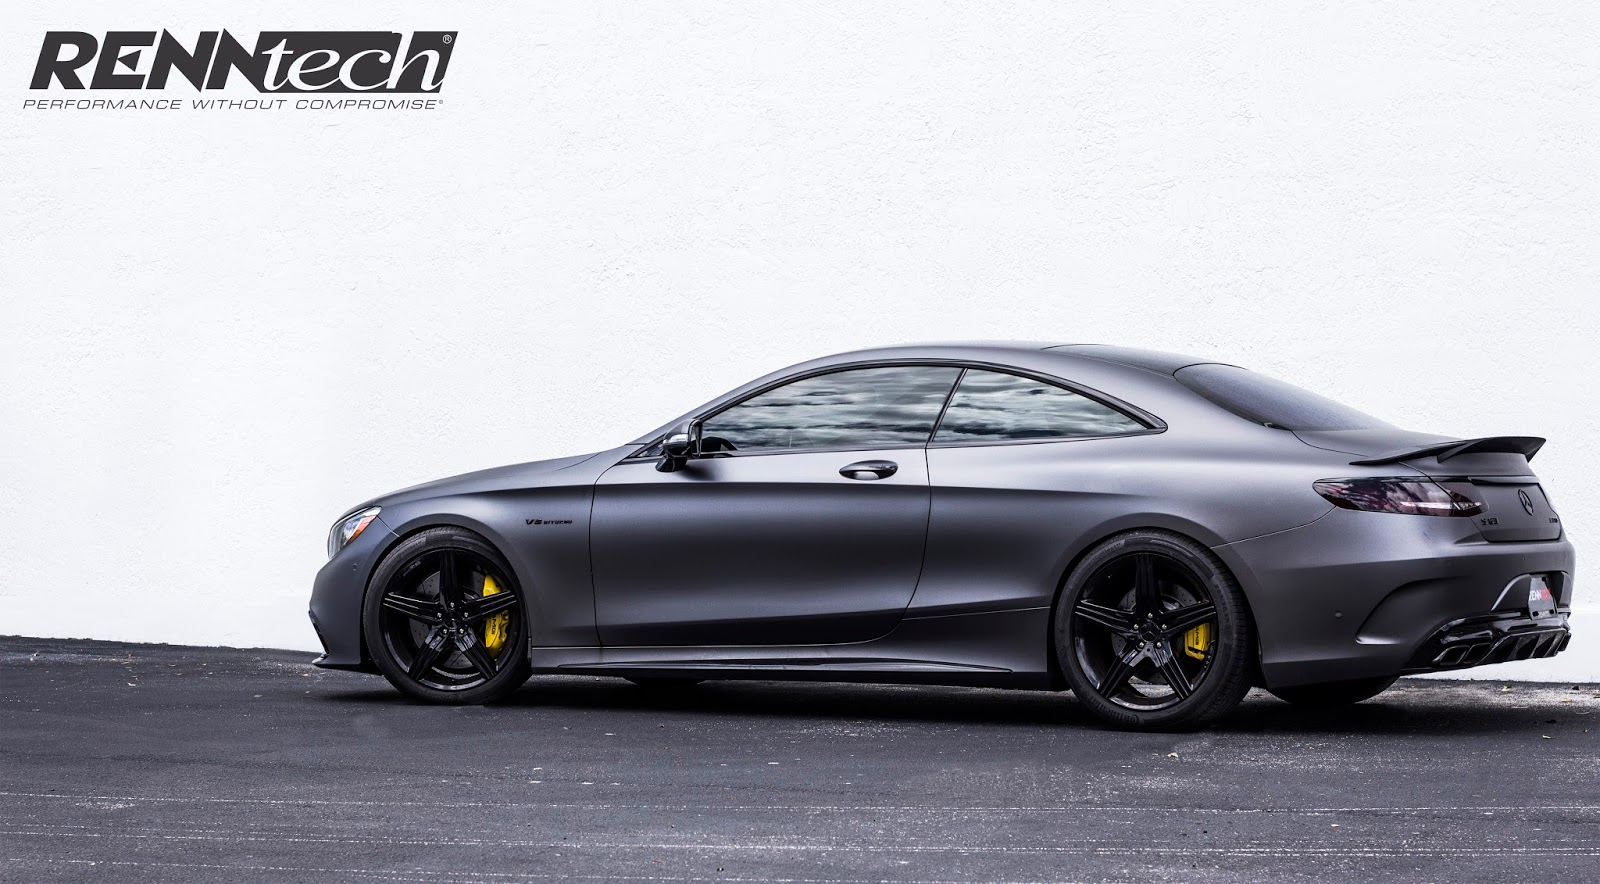 Mercedes benz c217 s63 amg coupe by renntech benztuning for Mercedes benz s 63 amg